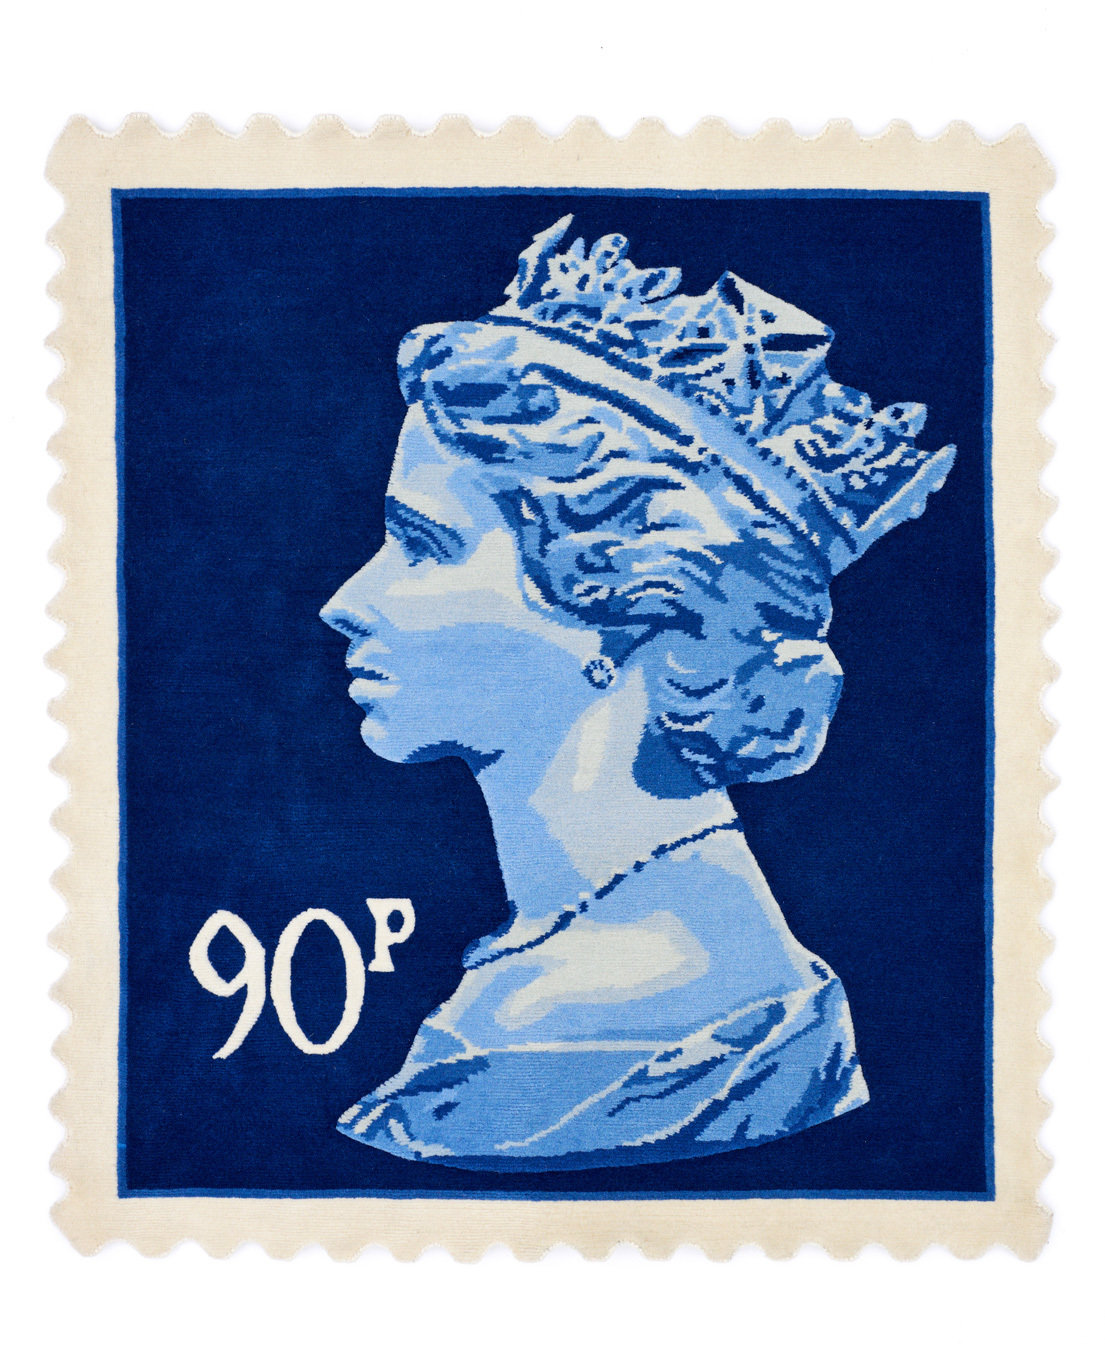 Stamp rug blue 90p size 120 x 100